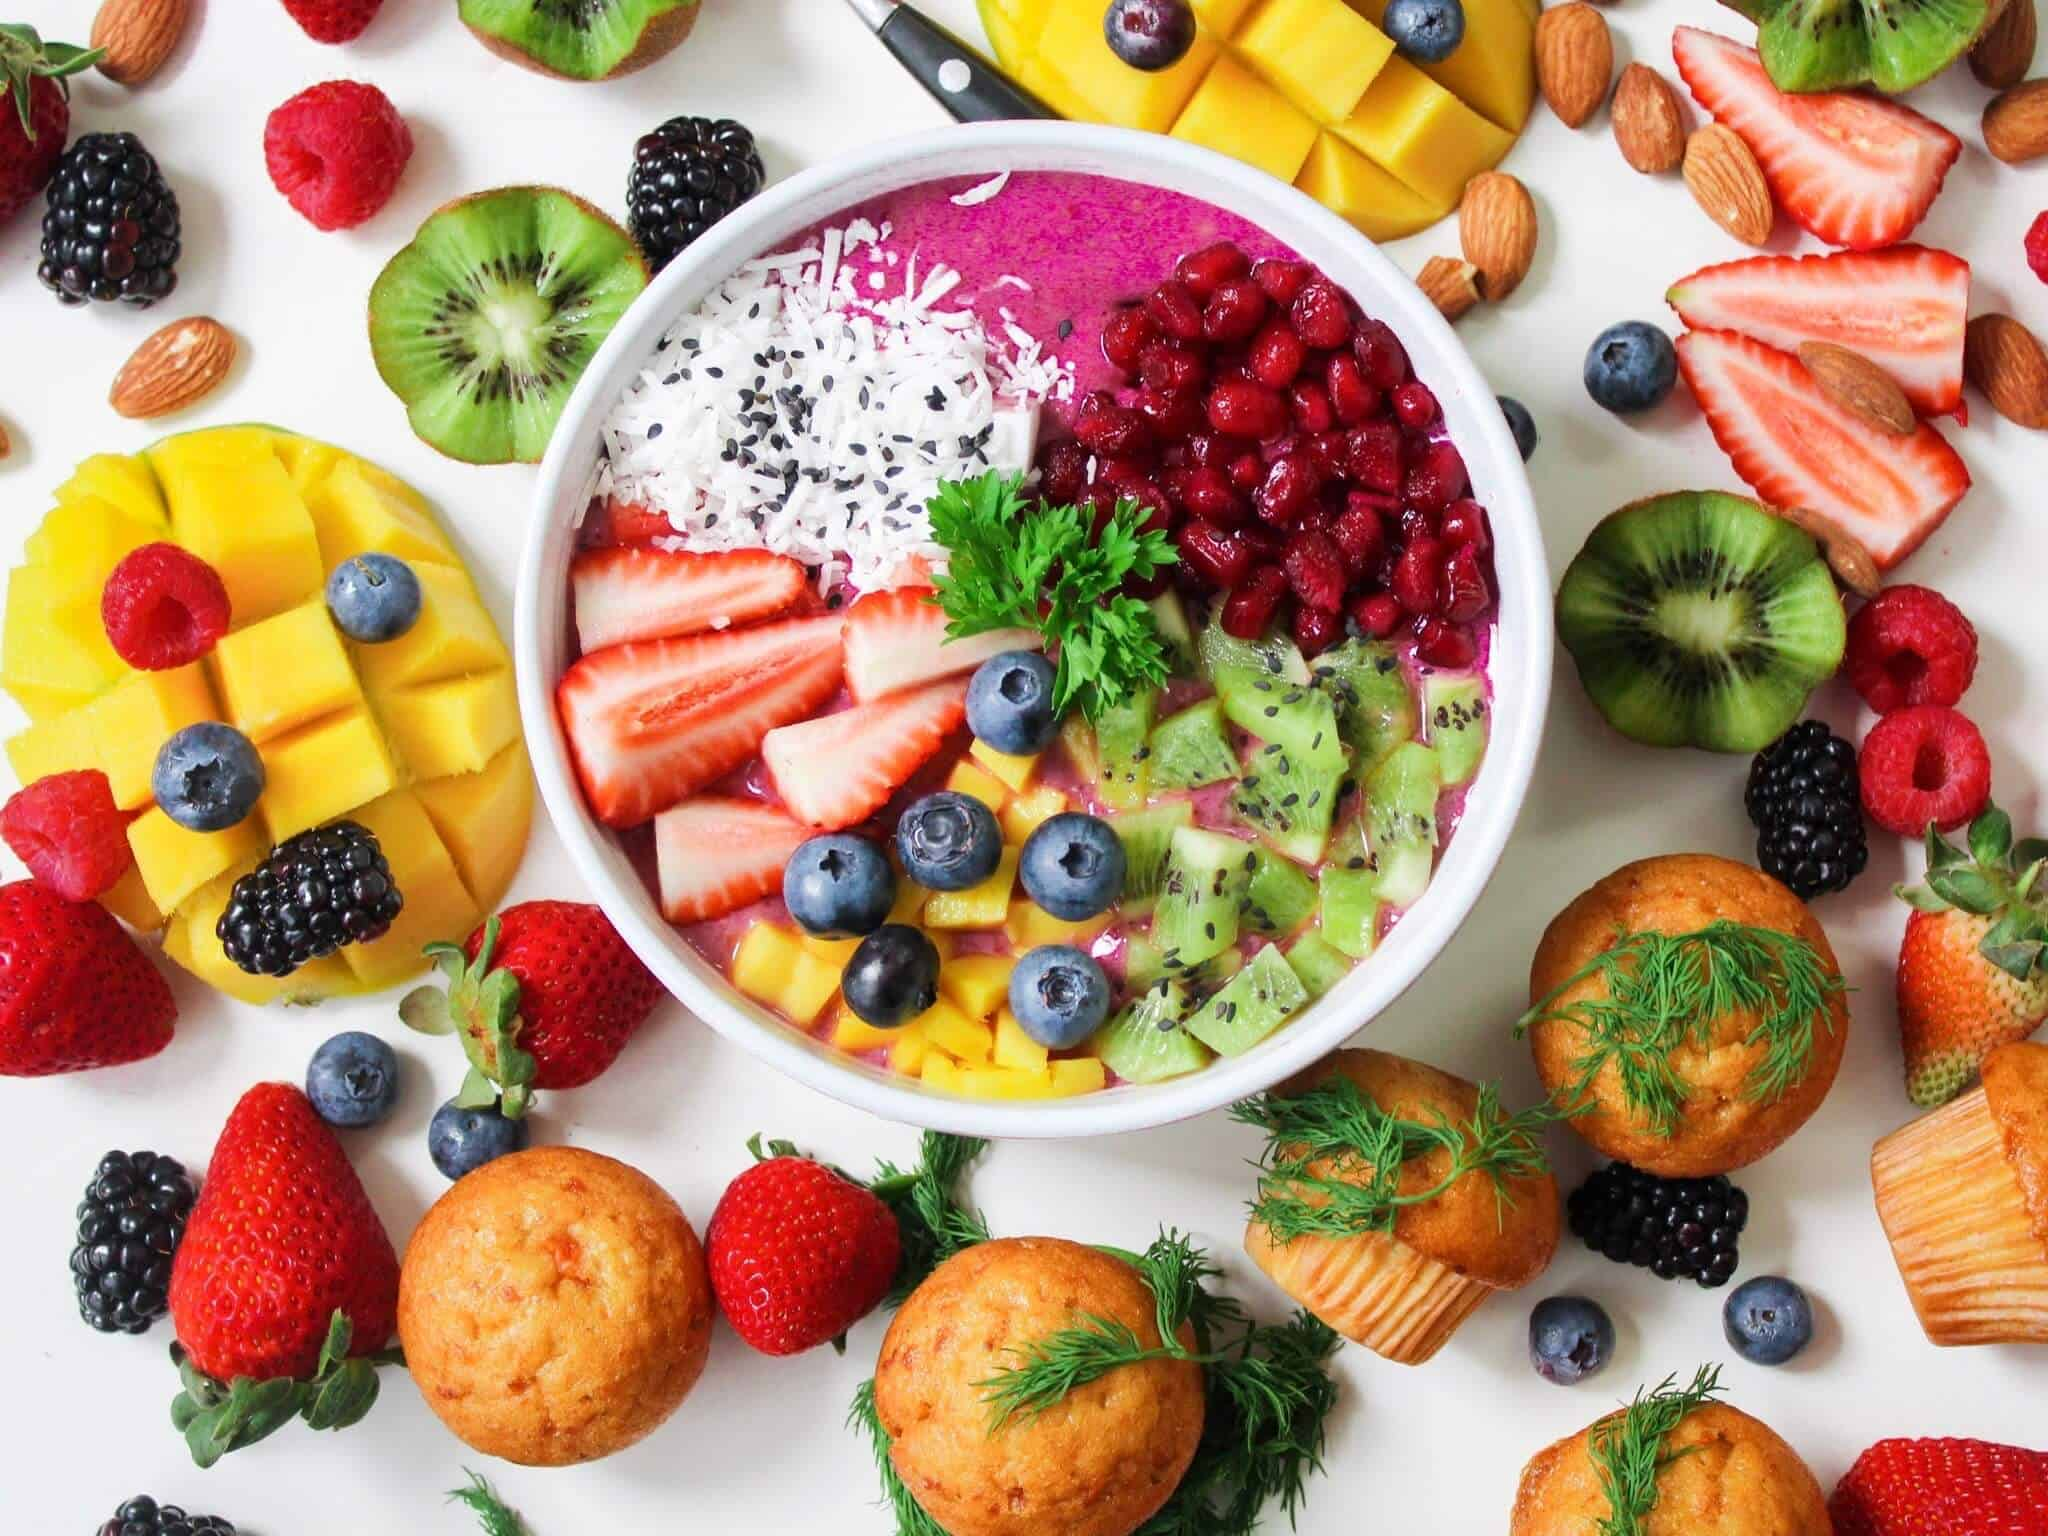 Healthy Foods That Have High Nutritional Value